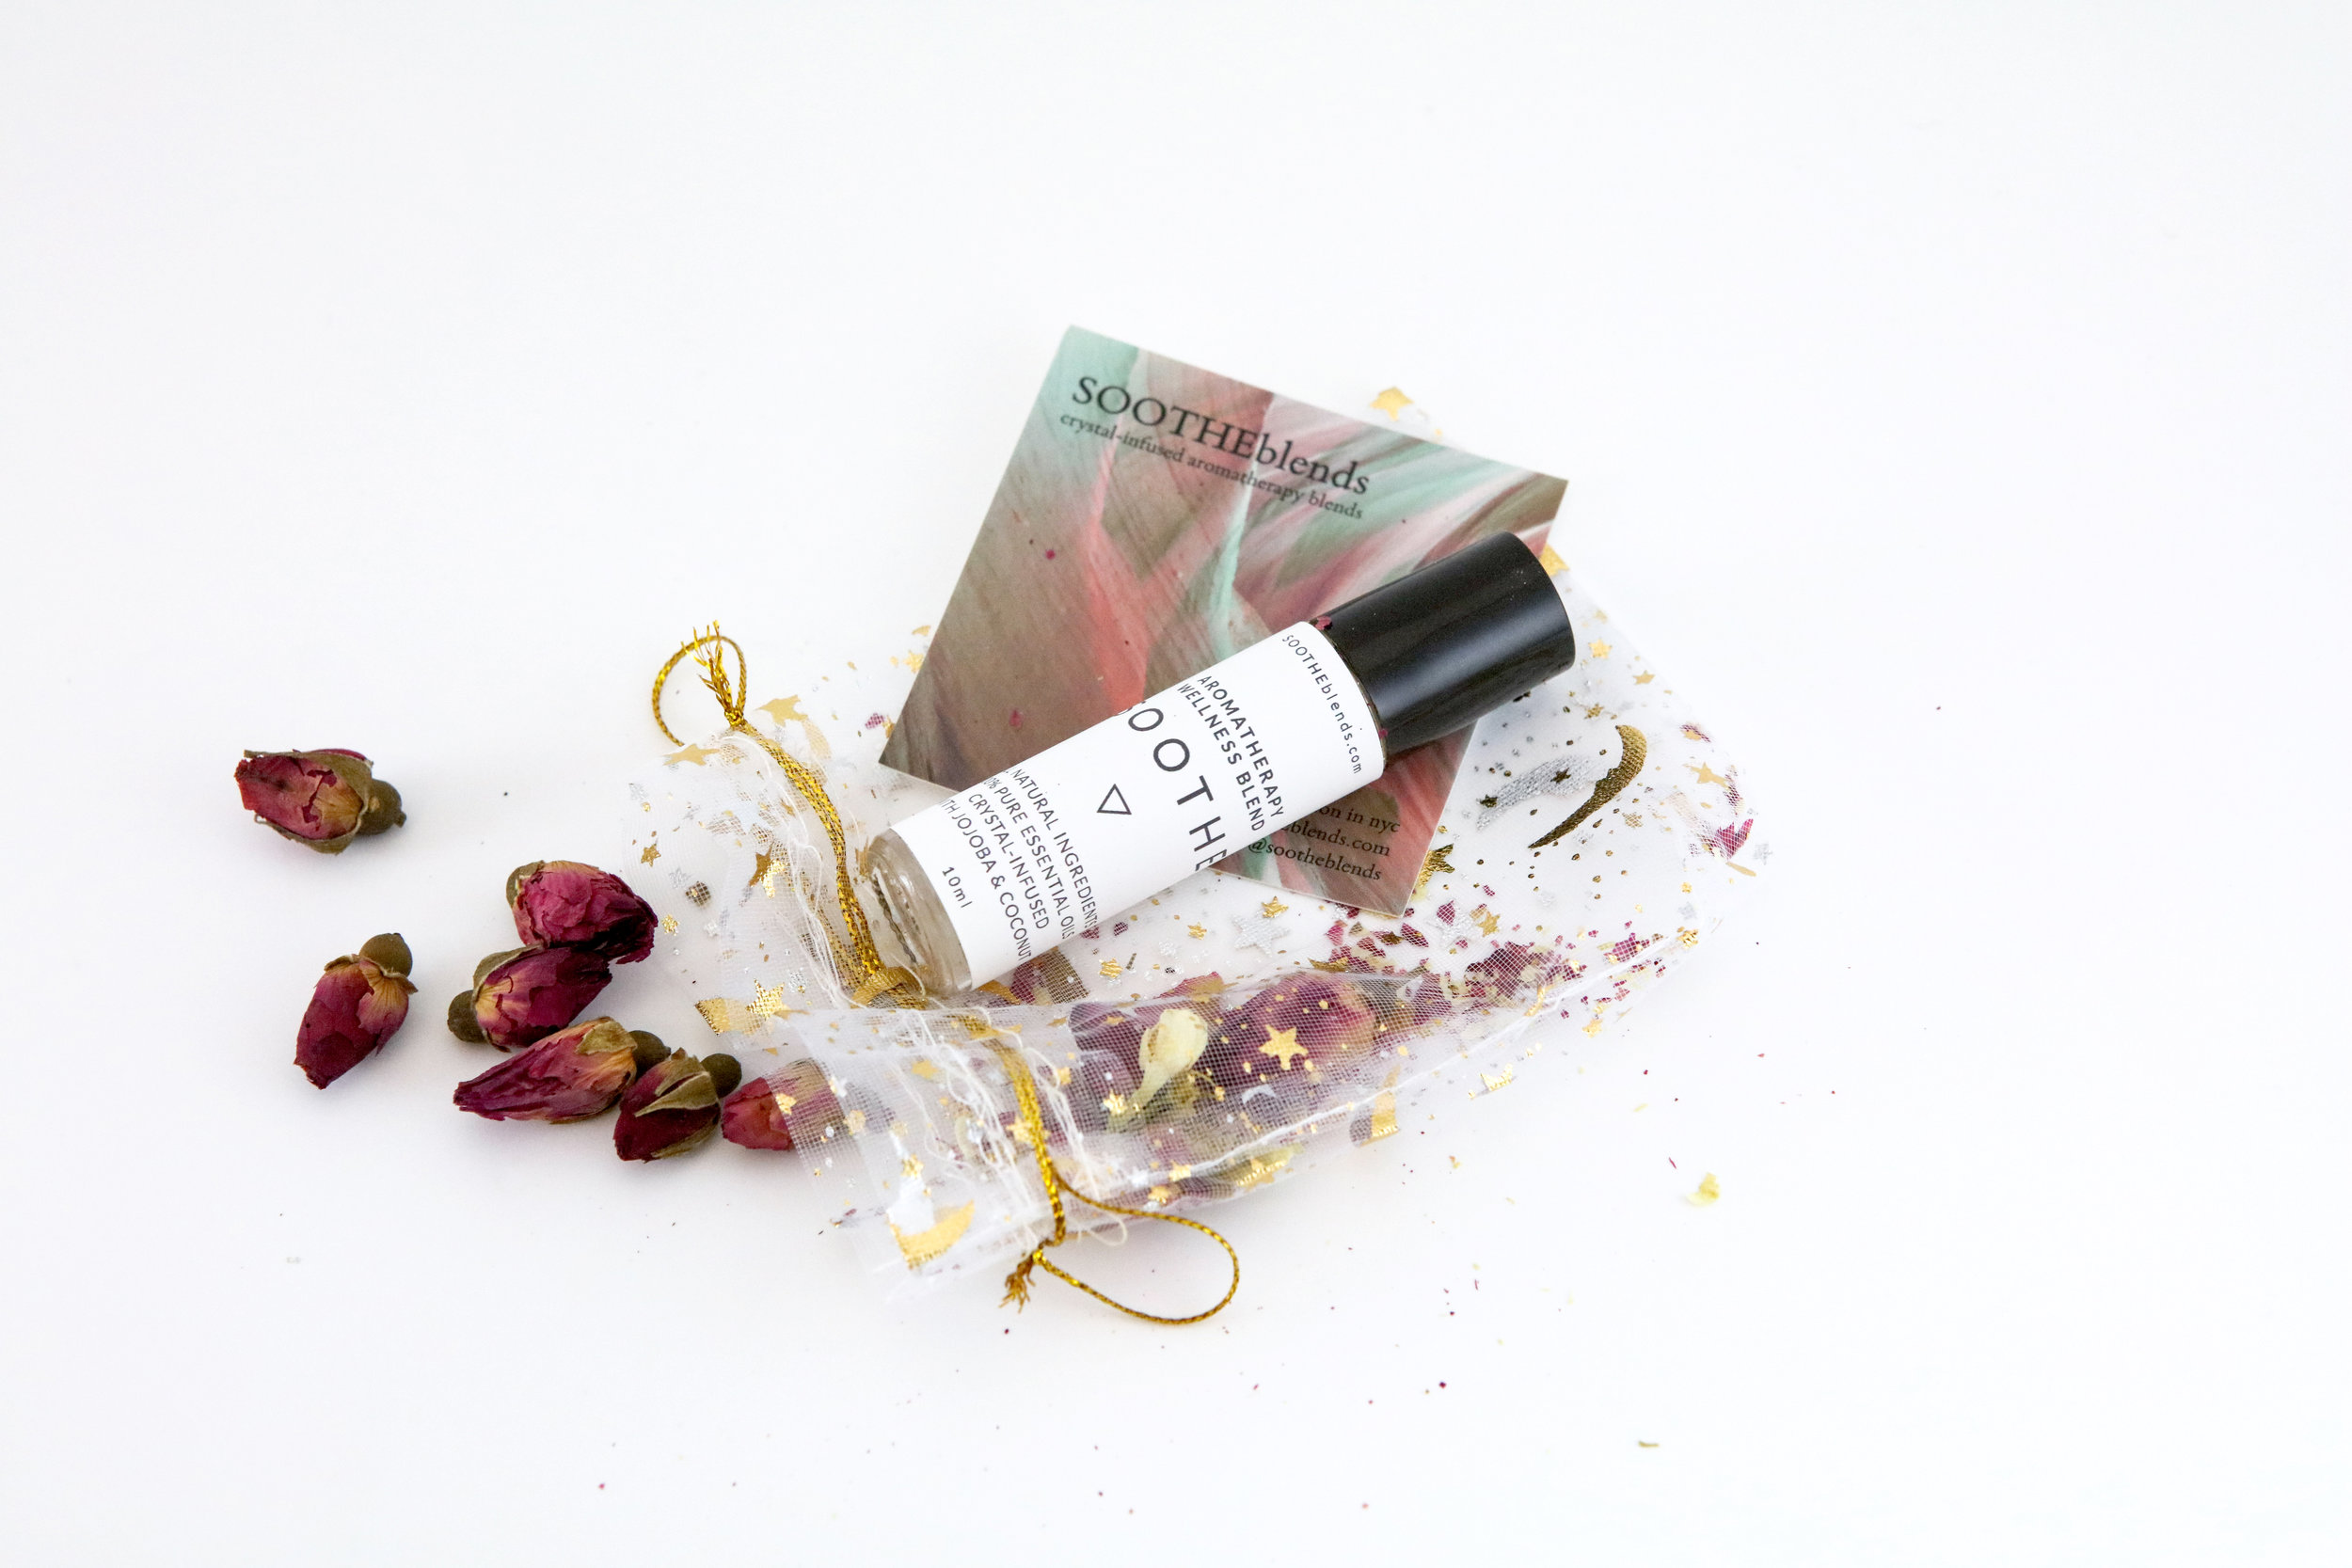 Therapeutic Item: SOOTHE Signature Aromatherapy Wellness Blend   SOOTHE is my signature blend. With notes of Chamomile, Lavender, Ginger, Peppermint & Eucalyptus, it both rejuvenates and calms, making it the perfect antidote to stress, muscular pain, and headaches while also remaining invigorating on the senses and, well, SOOTHing for the body & soul. A major component in all my blends is Jojoba oil, which is medicine for skin, hair, and nails. Each bottle of SOOTHE is infused with the healing properties of a particular crystal, which will be indicated within your package when it arrives. The alchemy of this specific blend relaxes, cools, and settles the nerves. Breathe SOOTHE in, and when you release your breath, stress & tension will go with it.